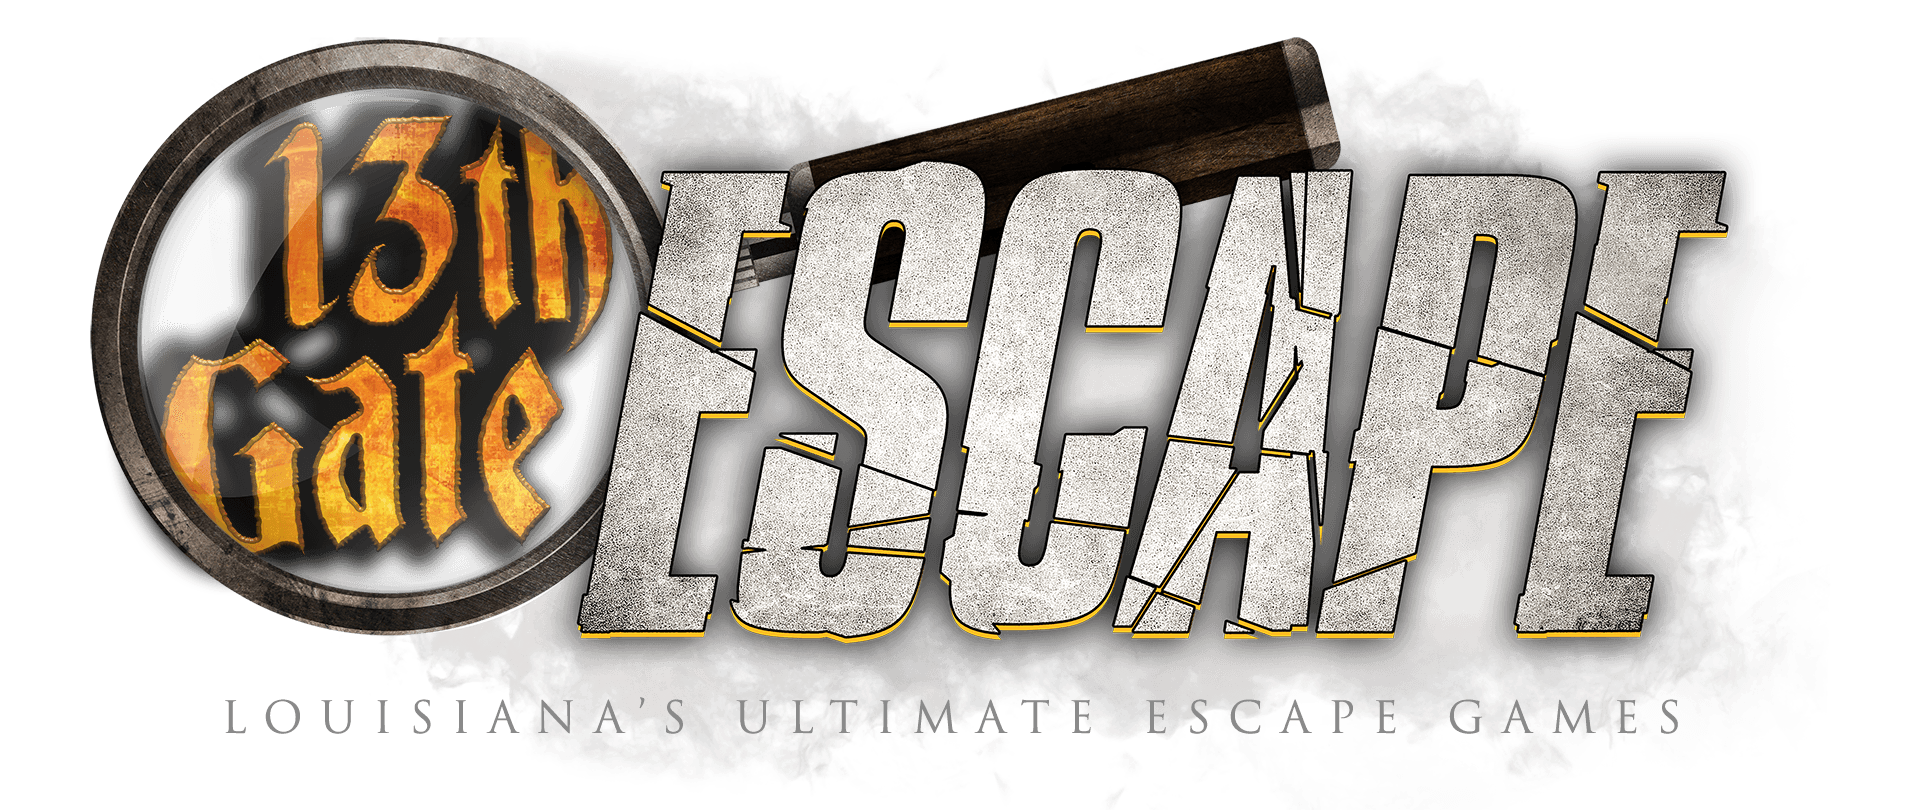 Louisiana's Ultimate Escape Games – 13th Gate Escape – You Have 60 minutes And One Goal… Escape before time runs out!